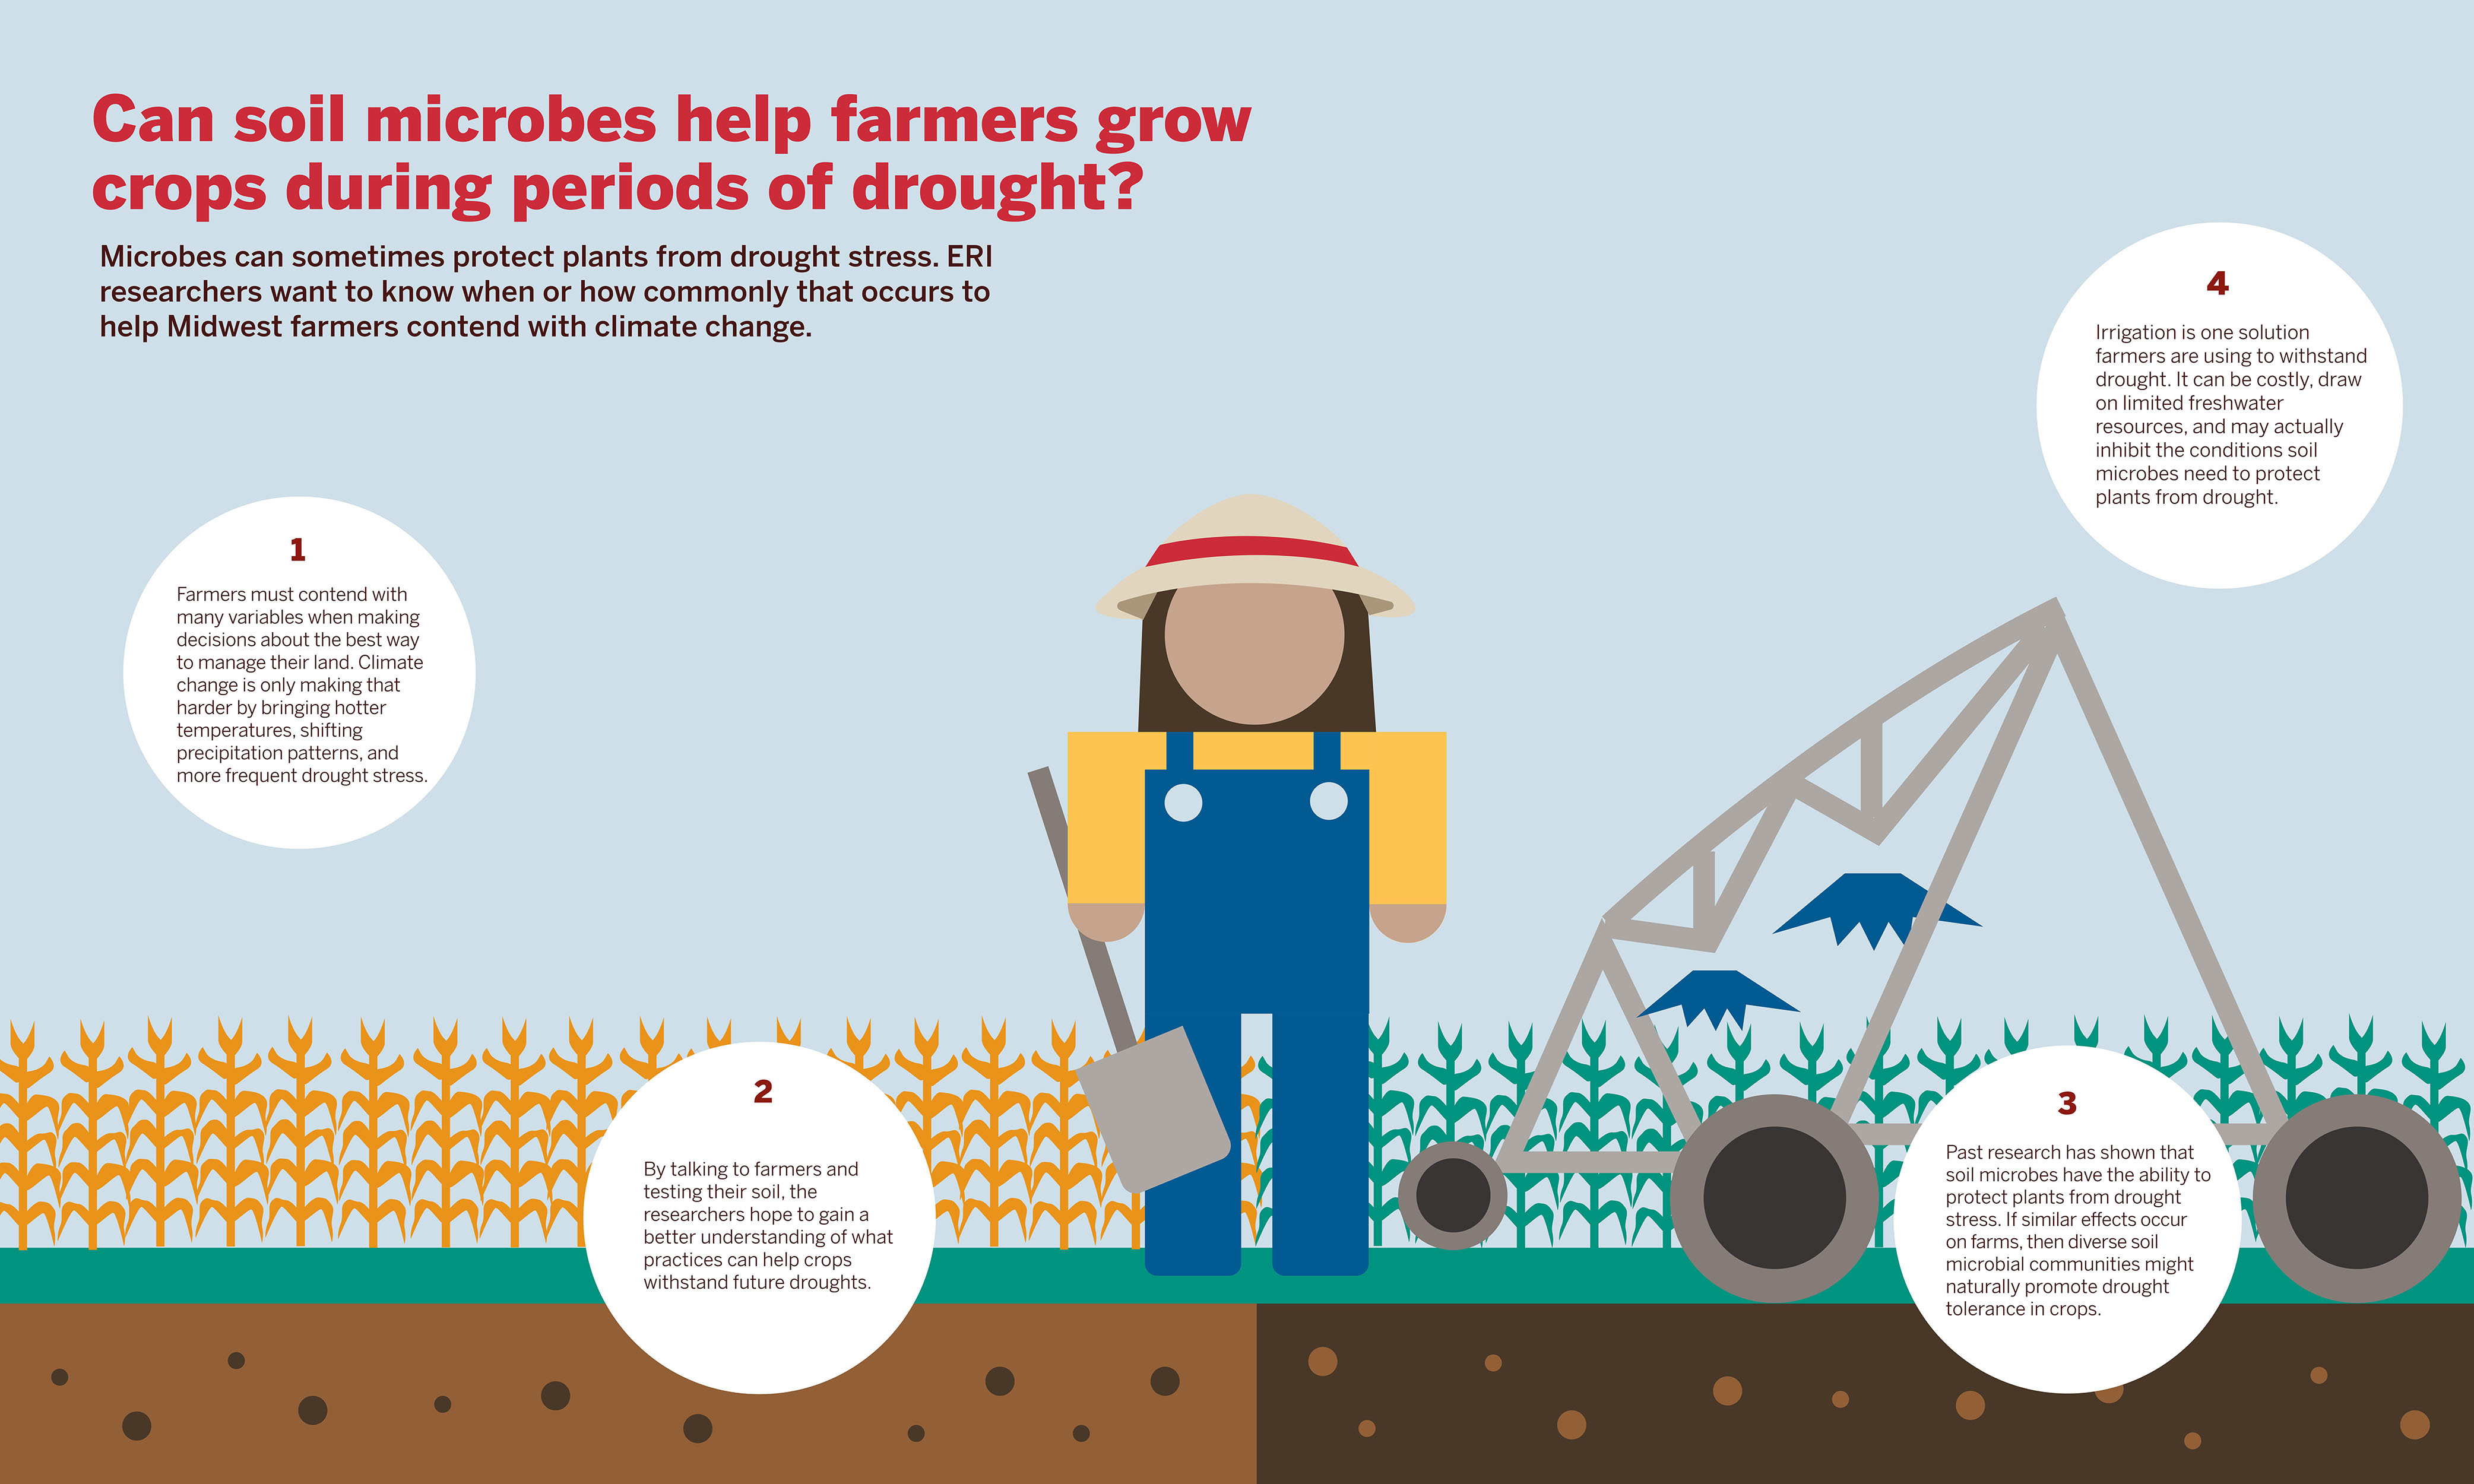 An infographic summarizing the NSF study: Can soil microbes help farmers grow crops during periods of drought?